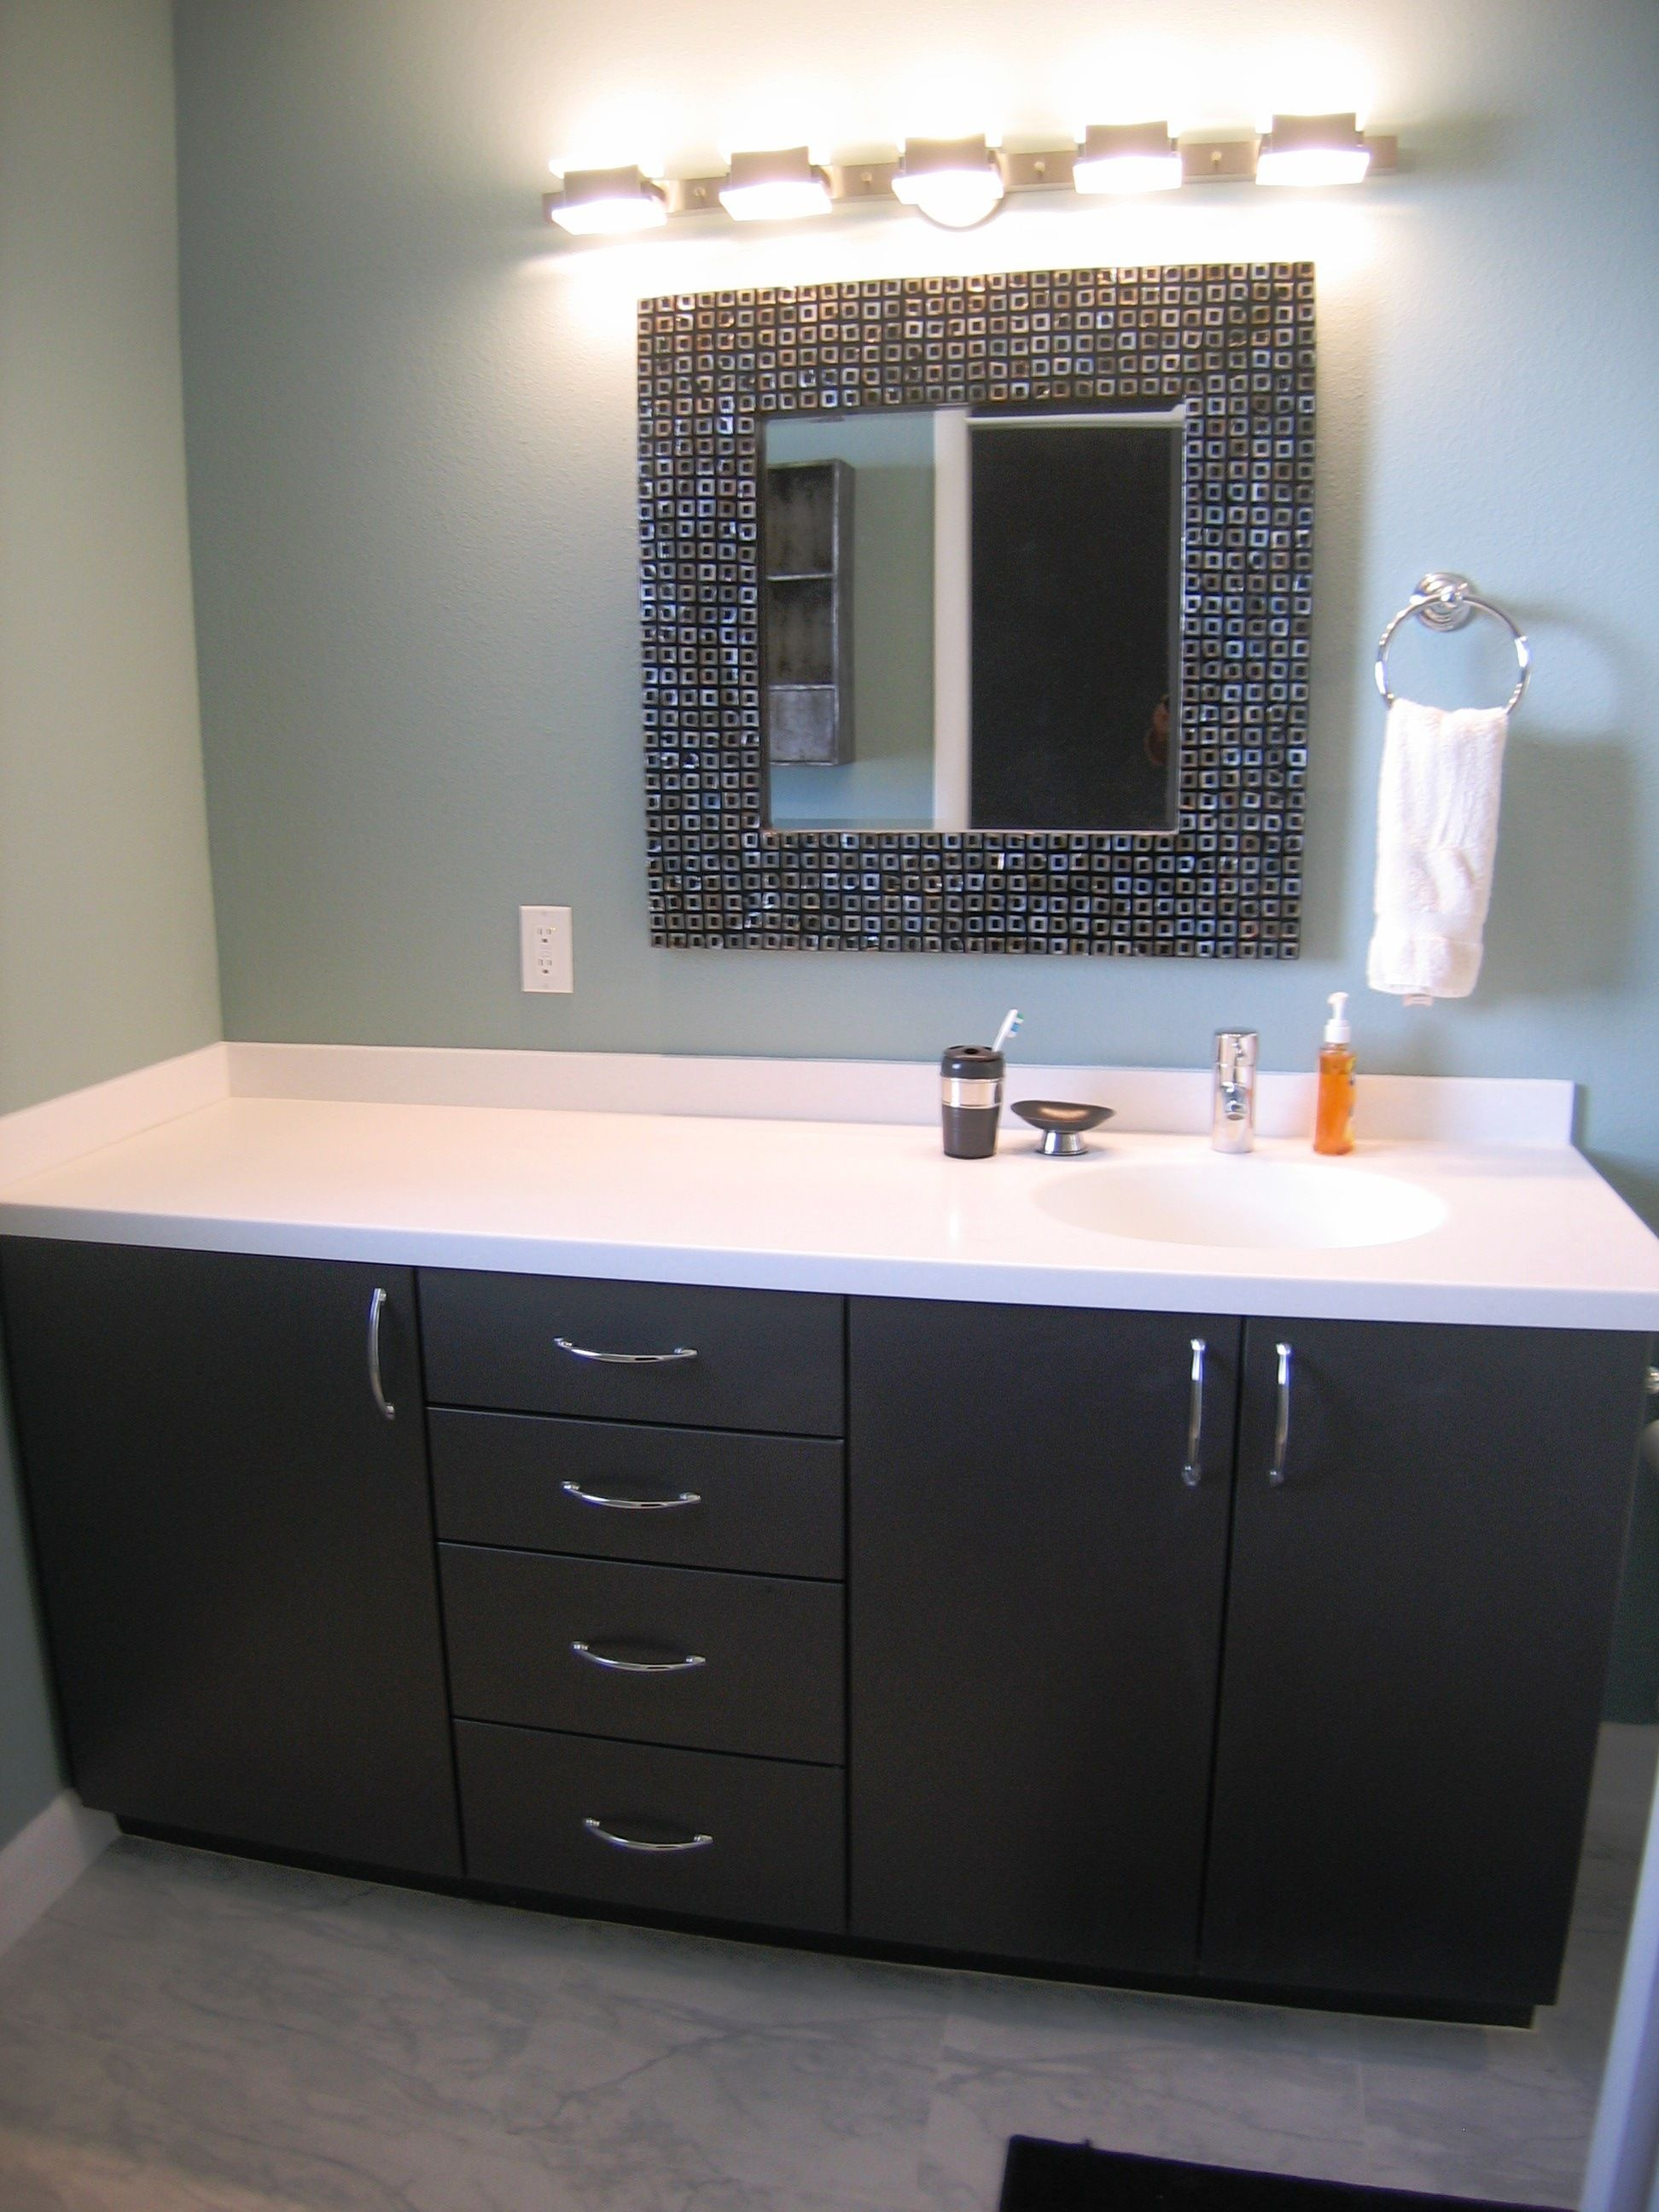 Thermofoil bathroom vanities - Vanity From Ultracraft Cabinetry Adriatic Doorstyle With Shark Thermofoil Corian Antarctica Counters Lighting